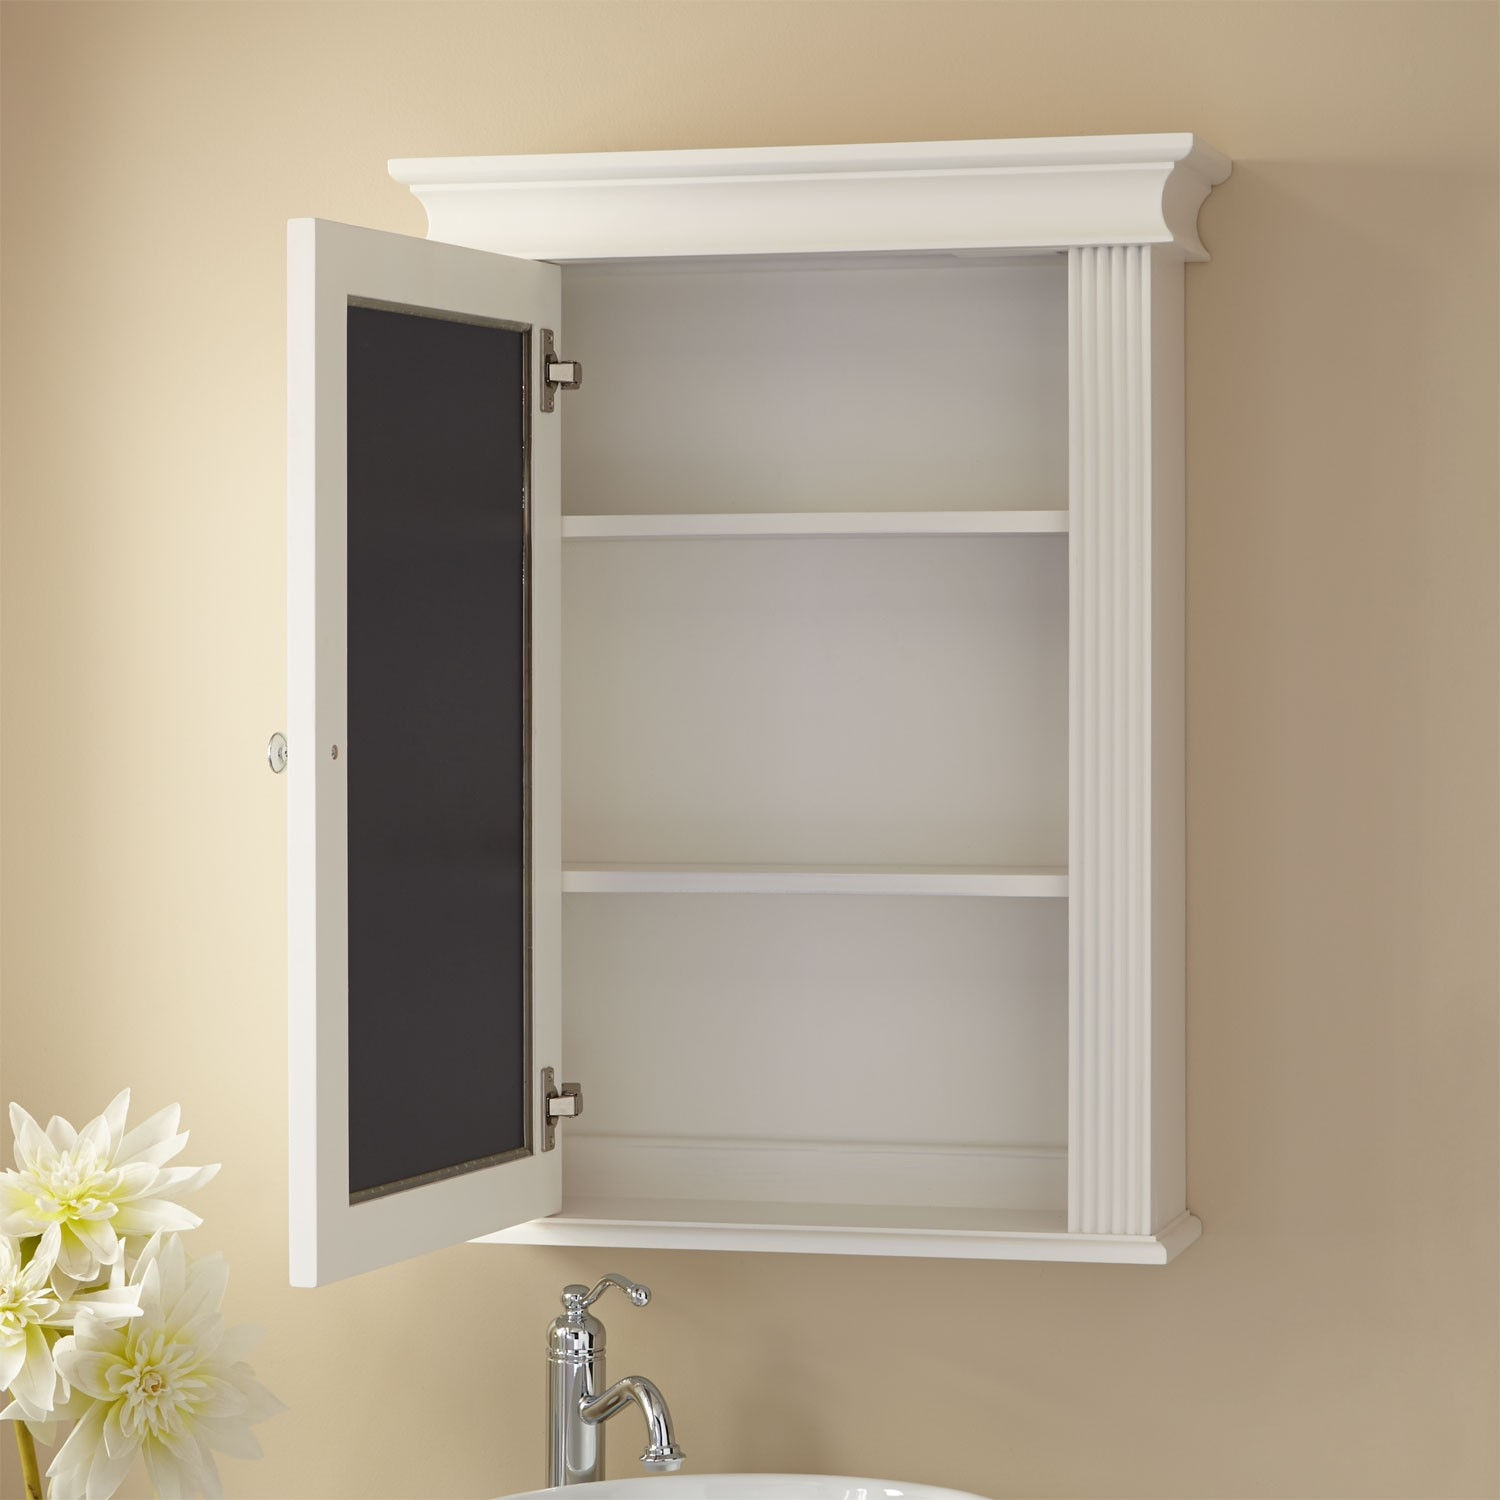 Permalink to Bathroom Cabinet Mirror Hardware